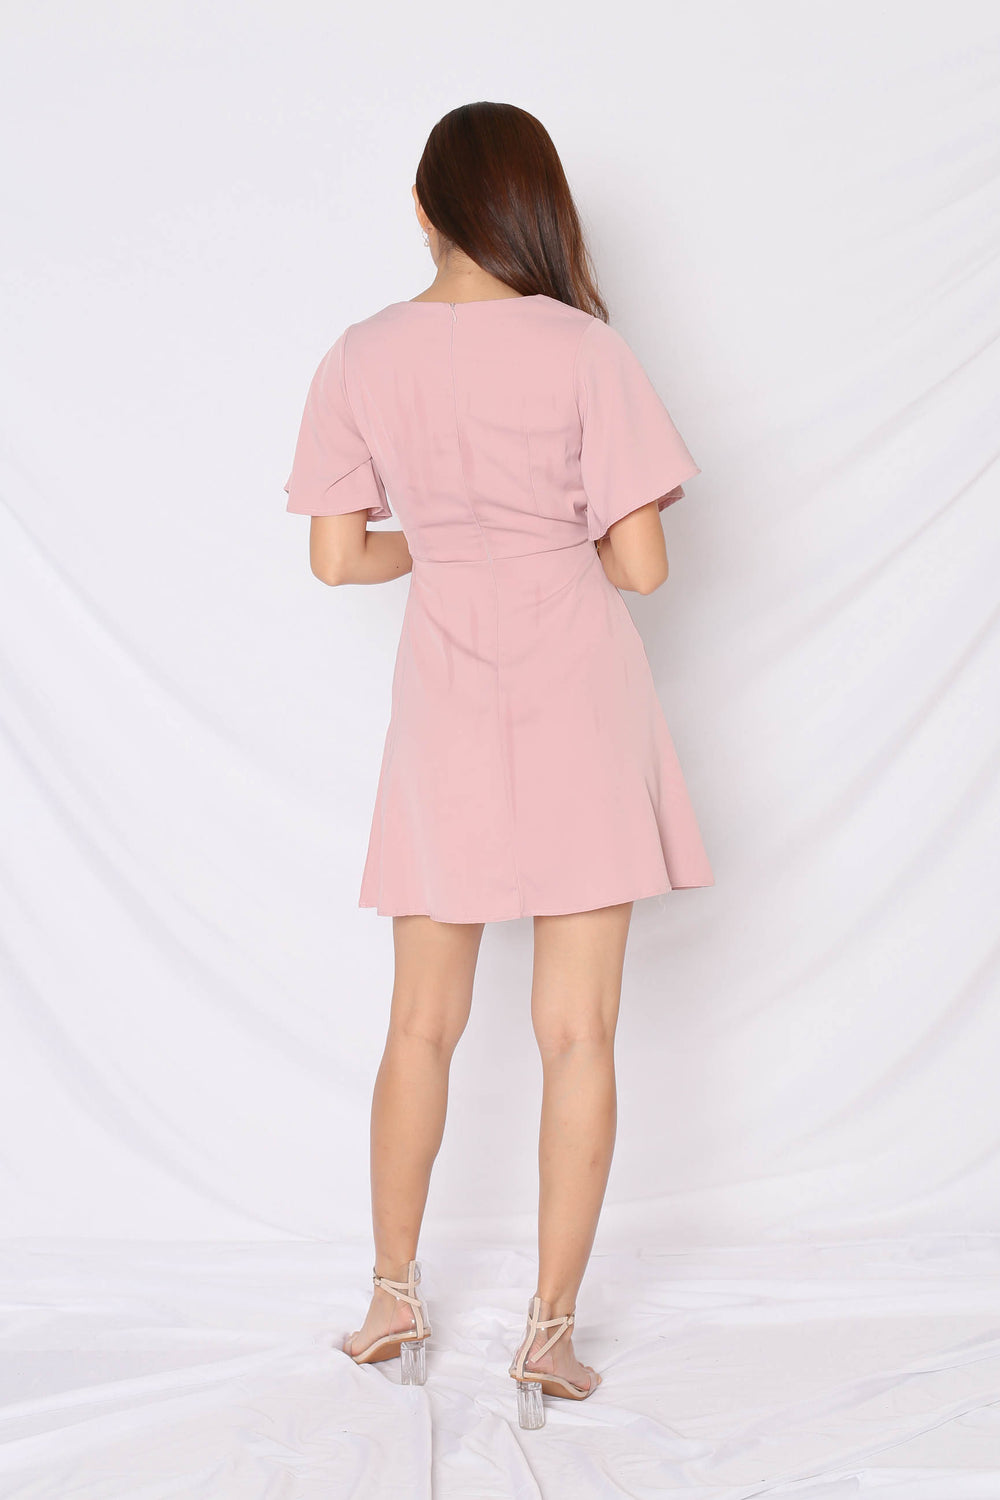 *TPZ* (PREMIUM) SHAY DRESS IN DUSTY PINK